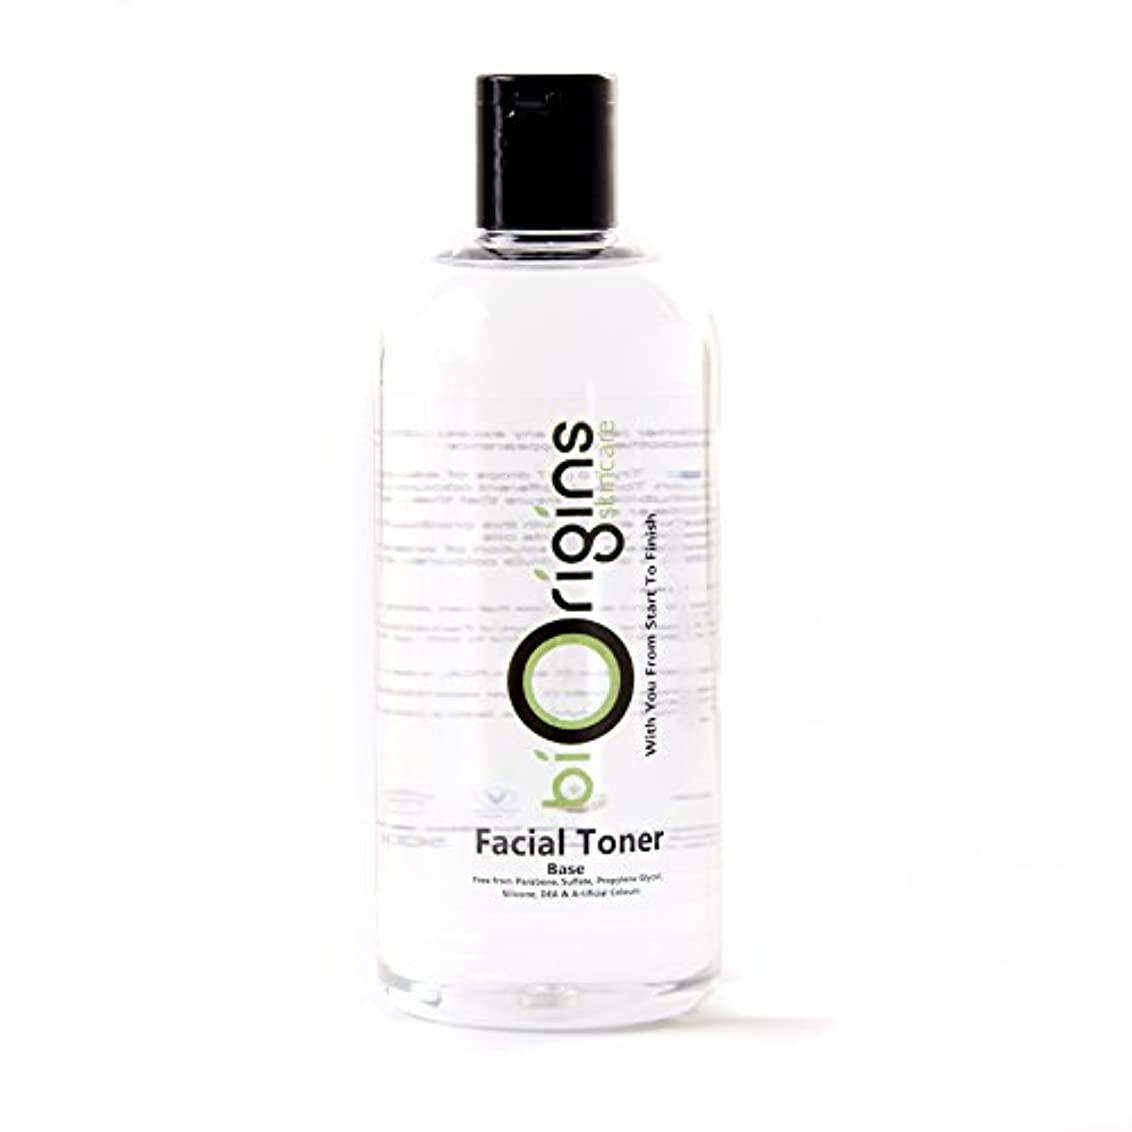 ハウジング盗難仕事に行くFacial Toner - S&P Free - Botanical Skincare Base - 500g